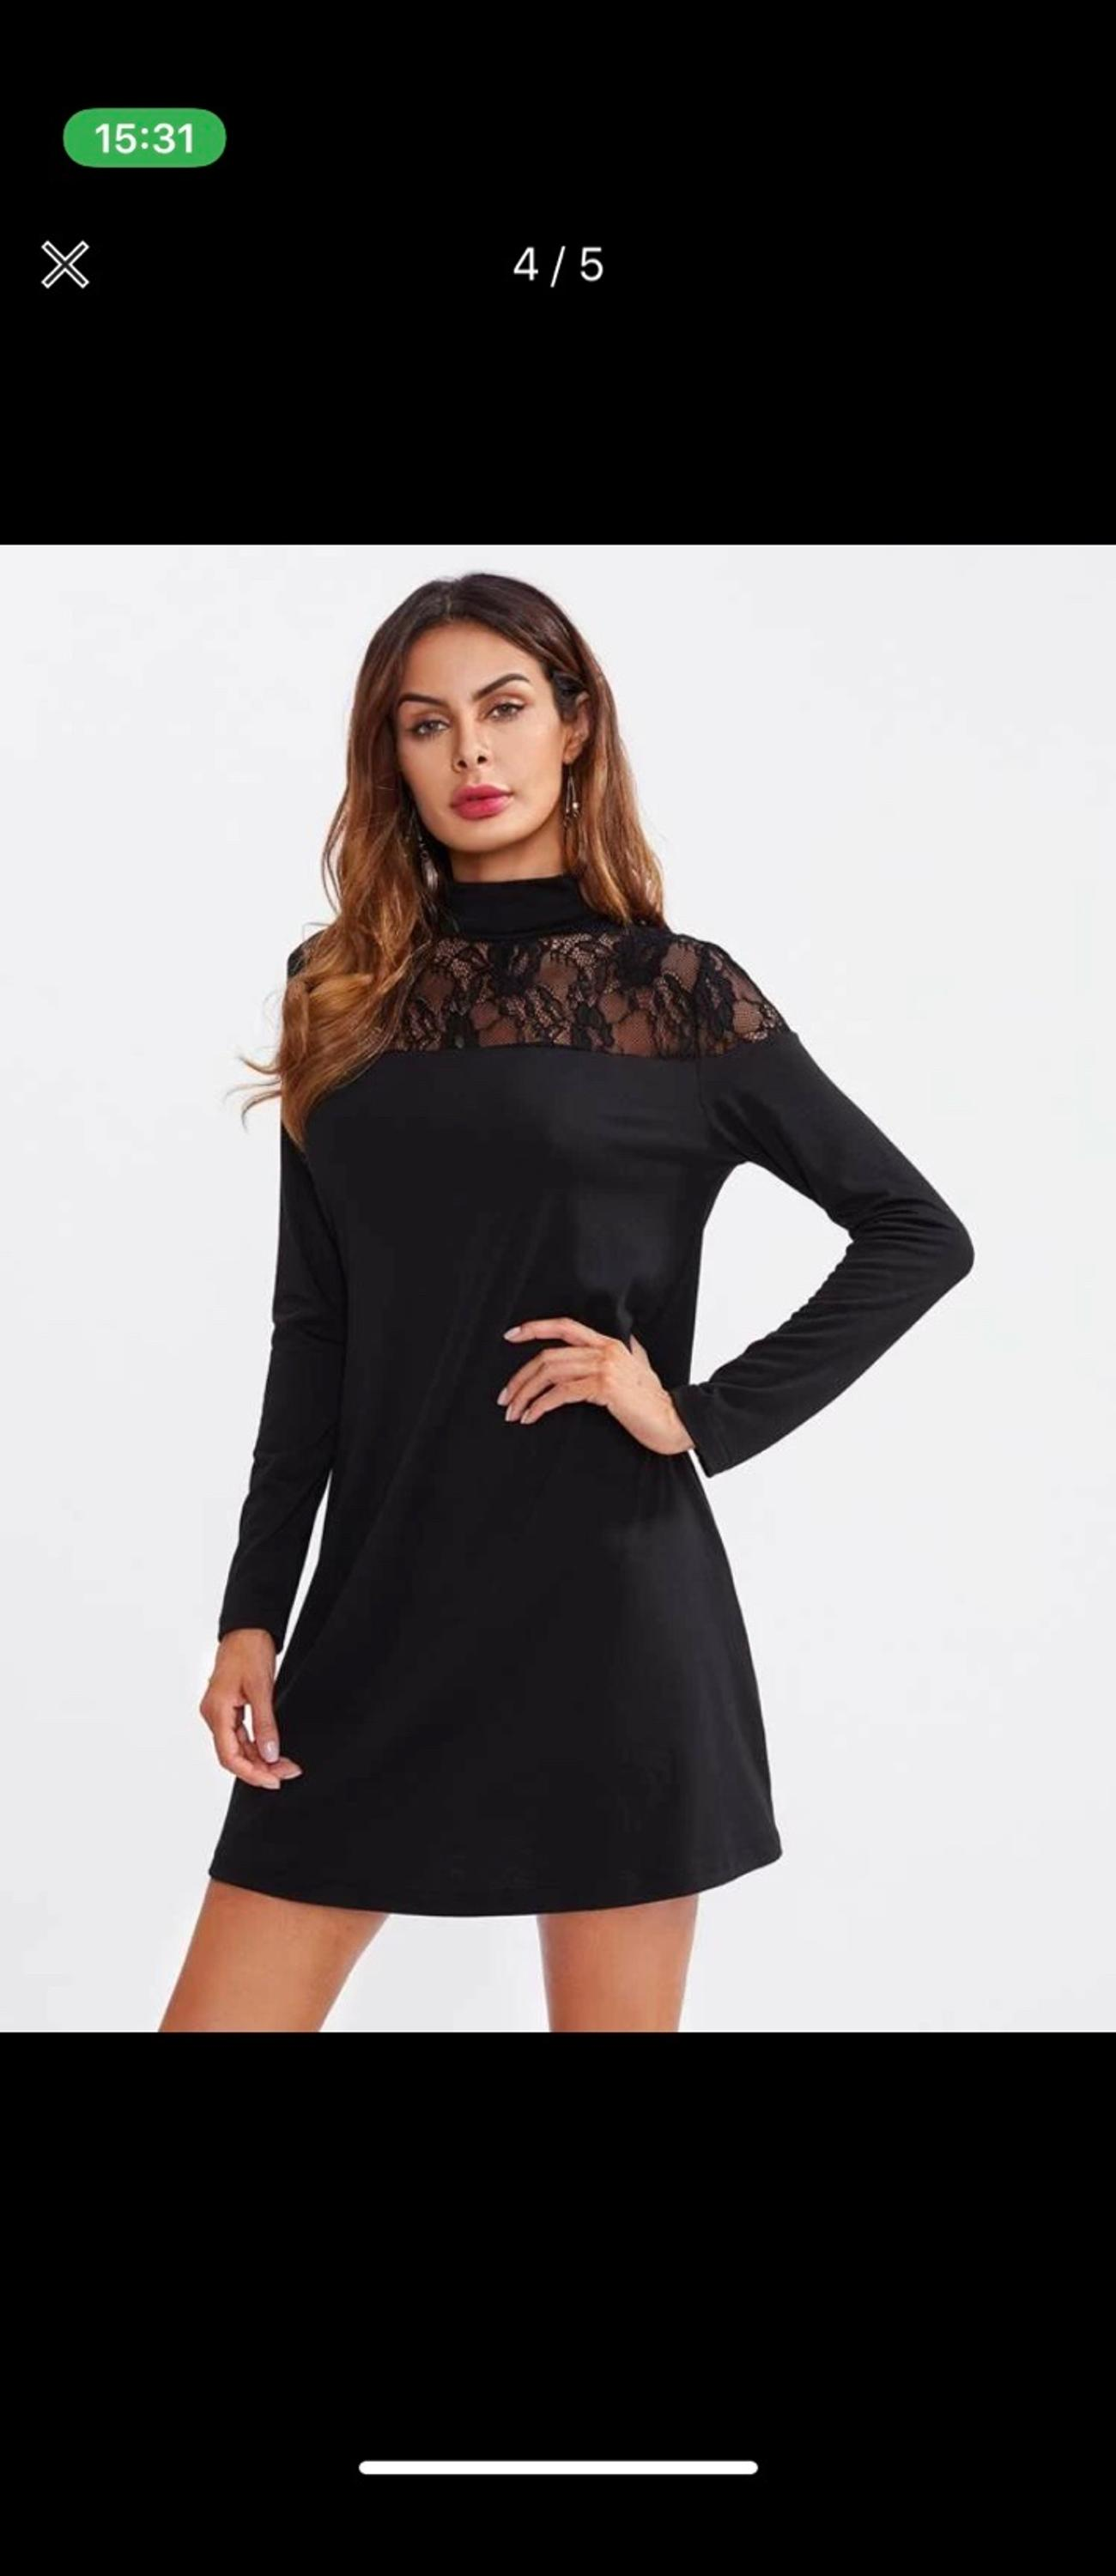 Black Lace Dress Size Medium Brand new No offers plz Collection only or postage £3